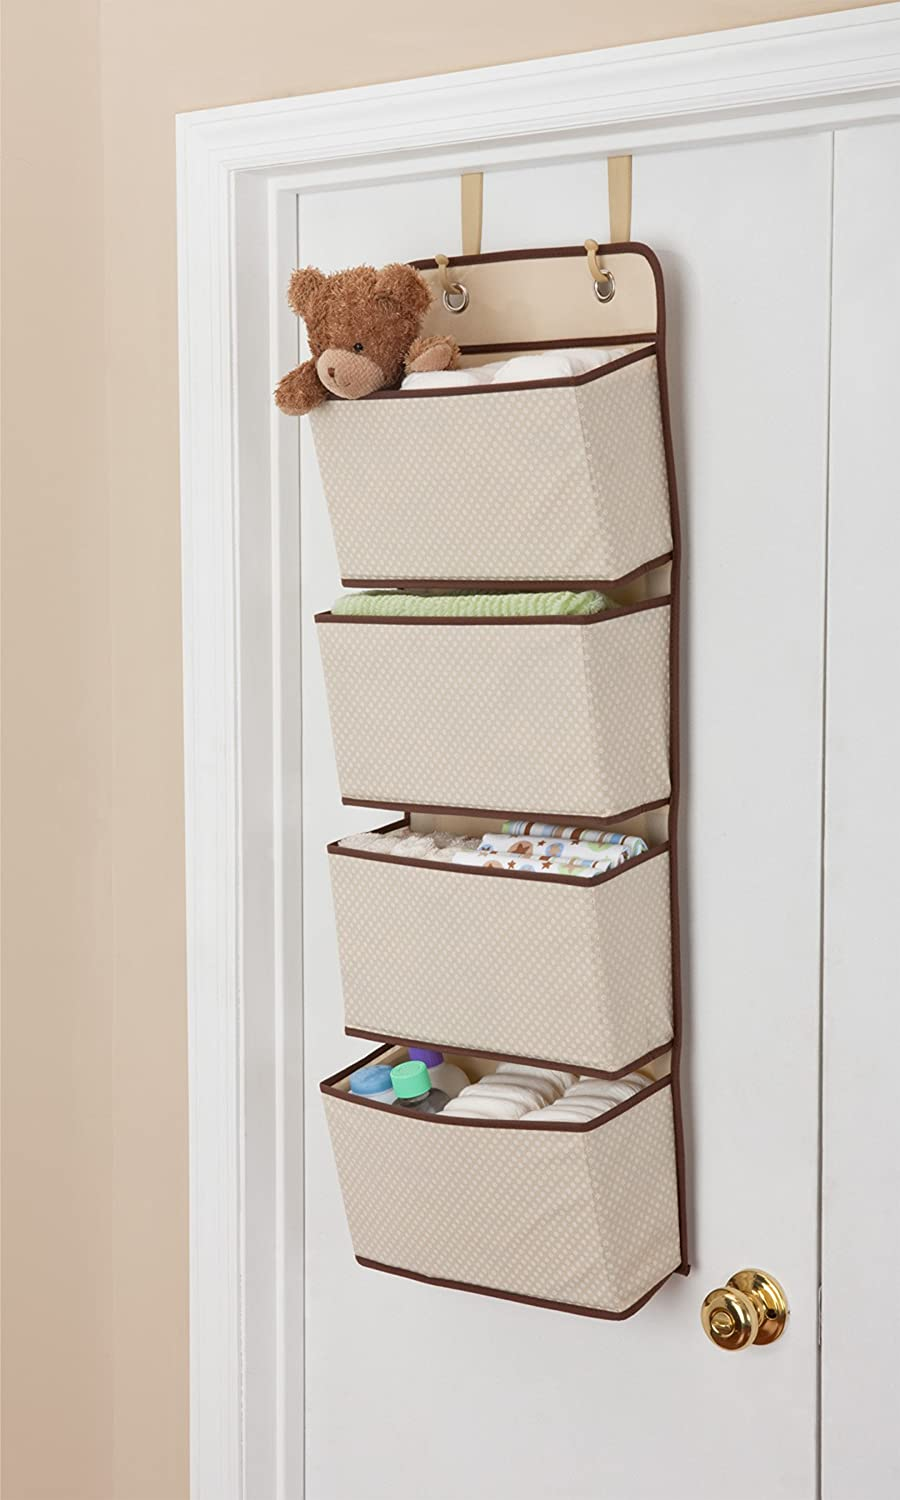 amazoncom delta children 4 pocket hanging wall organizer beige baby nice wall hanging office organizer 4